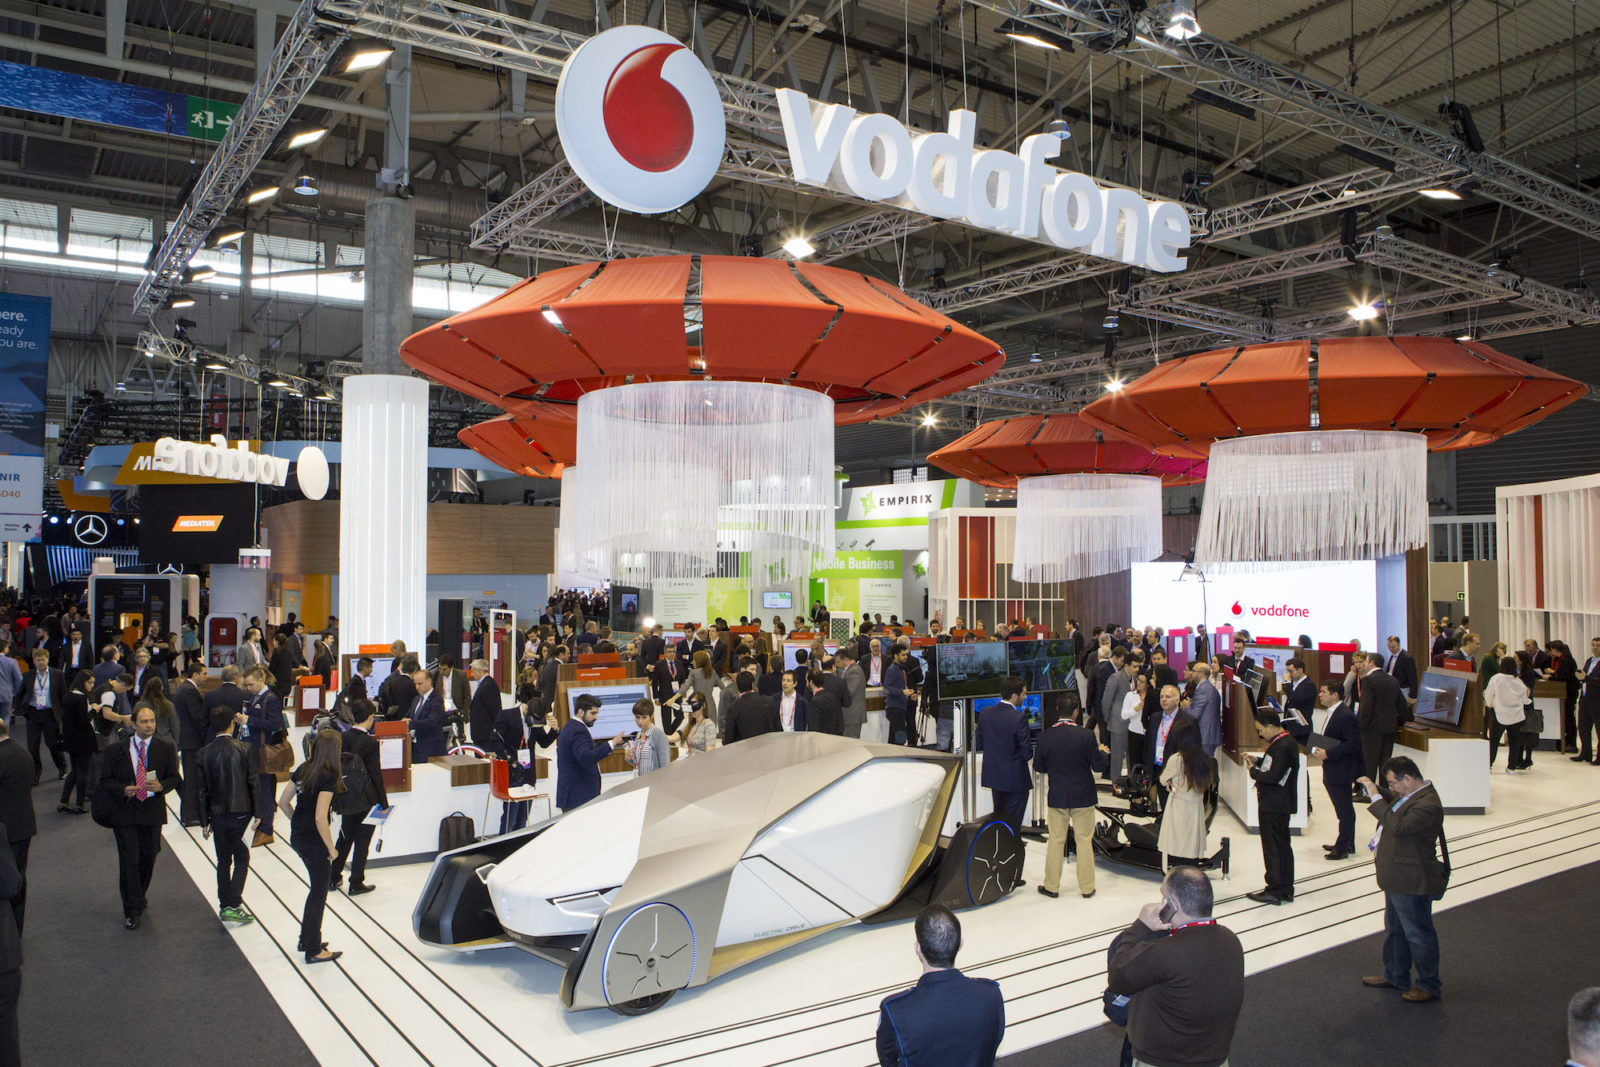 vodafone Mobile World Congress 2019